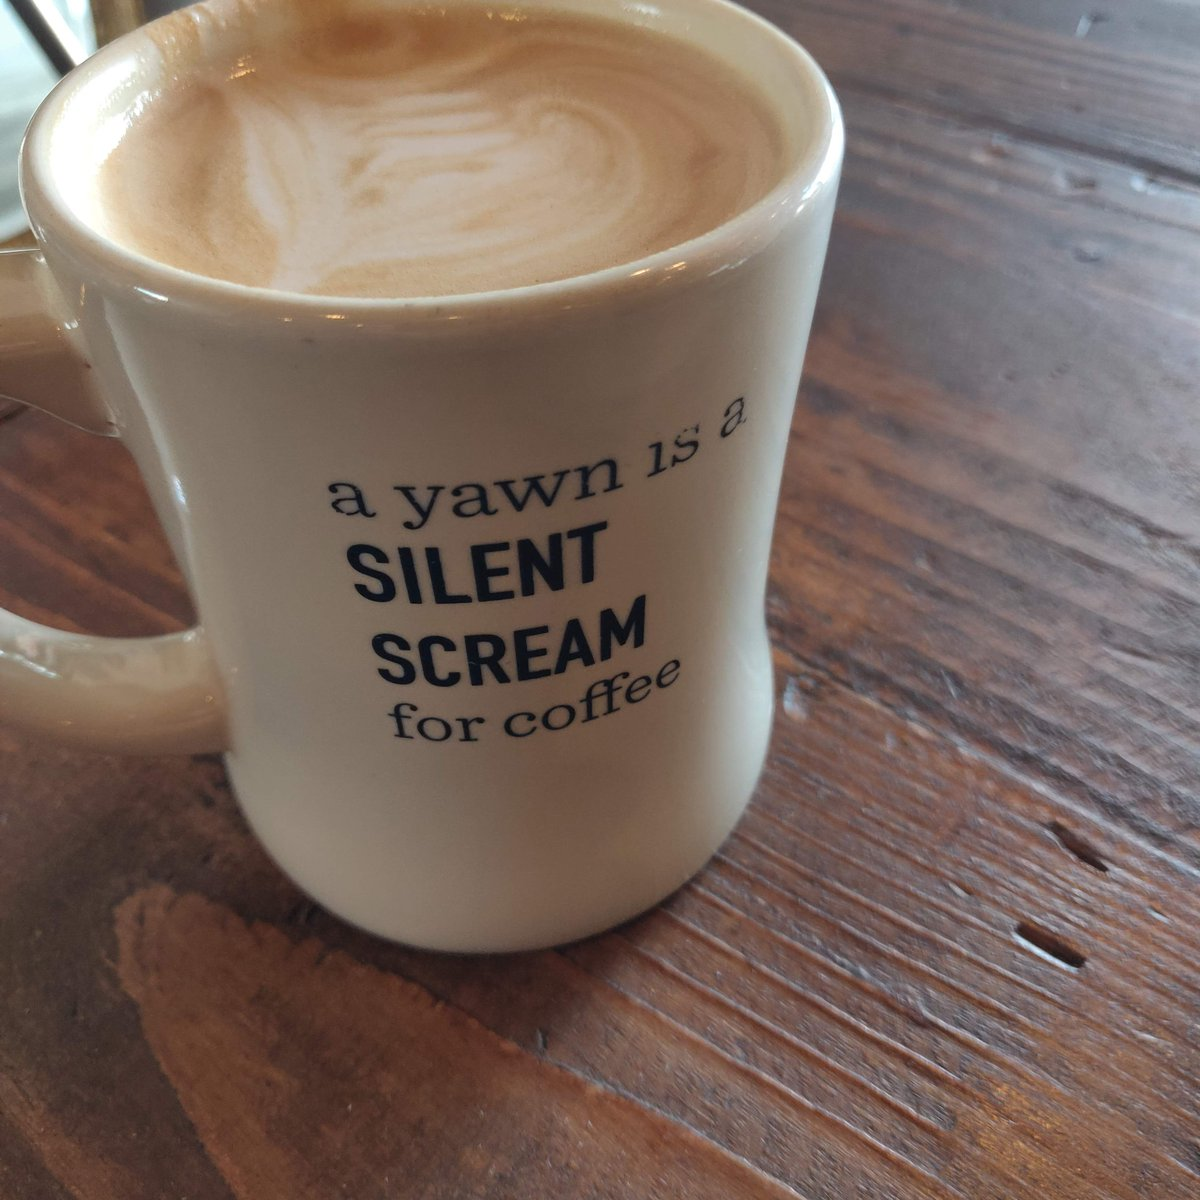 The Blue Butterfly, Main Street, El Segundo, CA - has in-house roasting and a dedication to great coffee - and good slogans